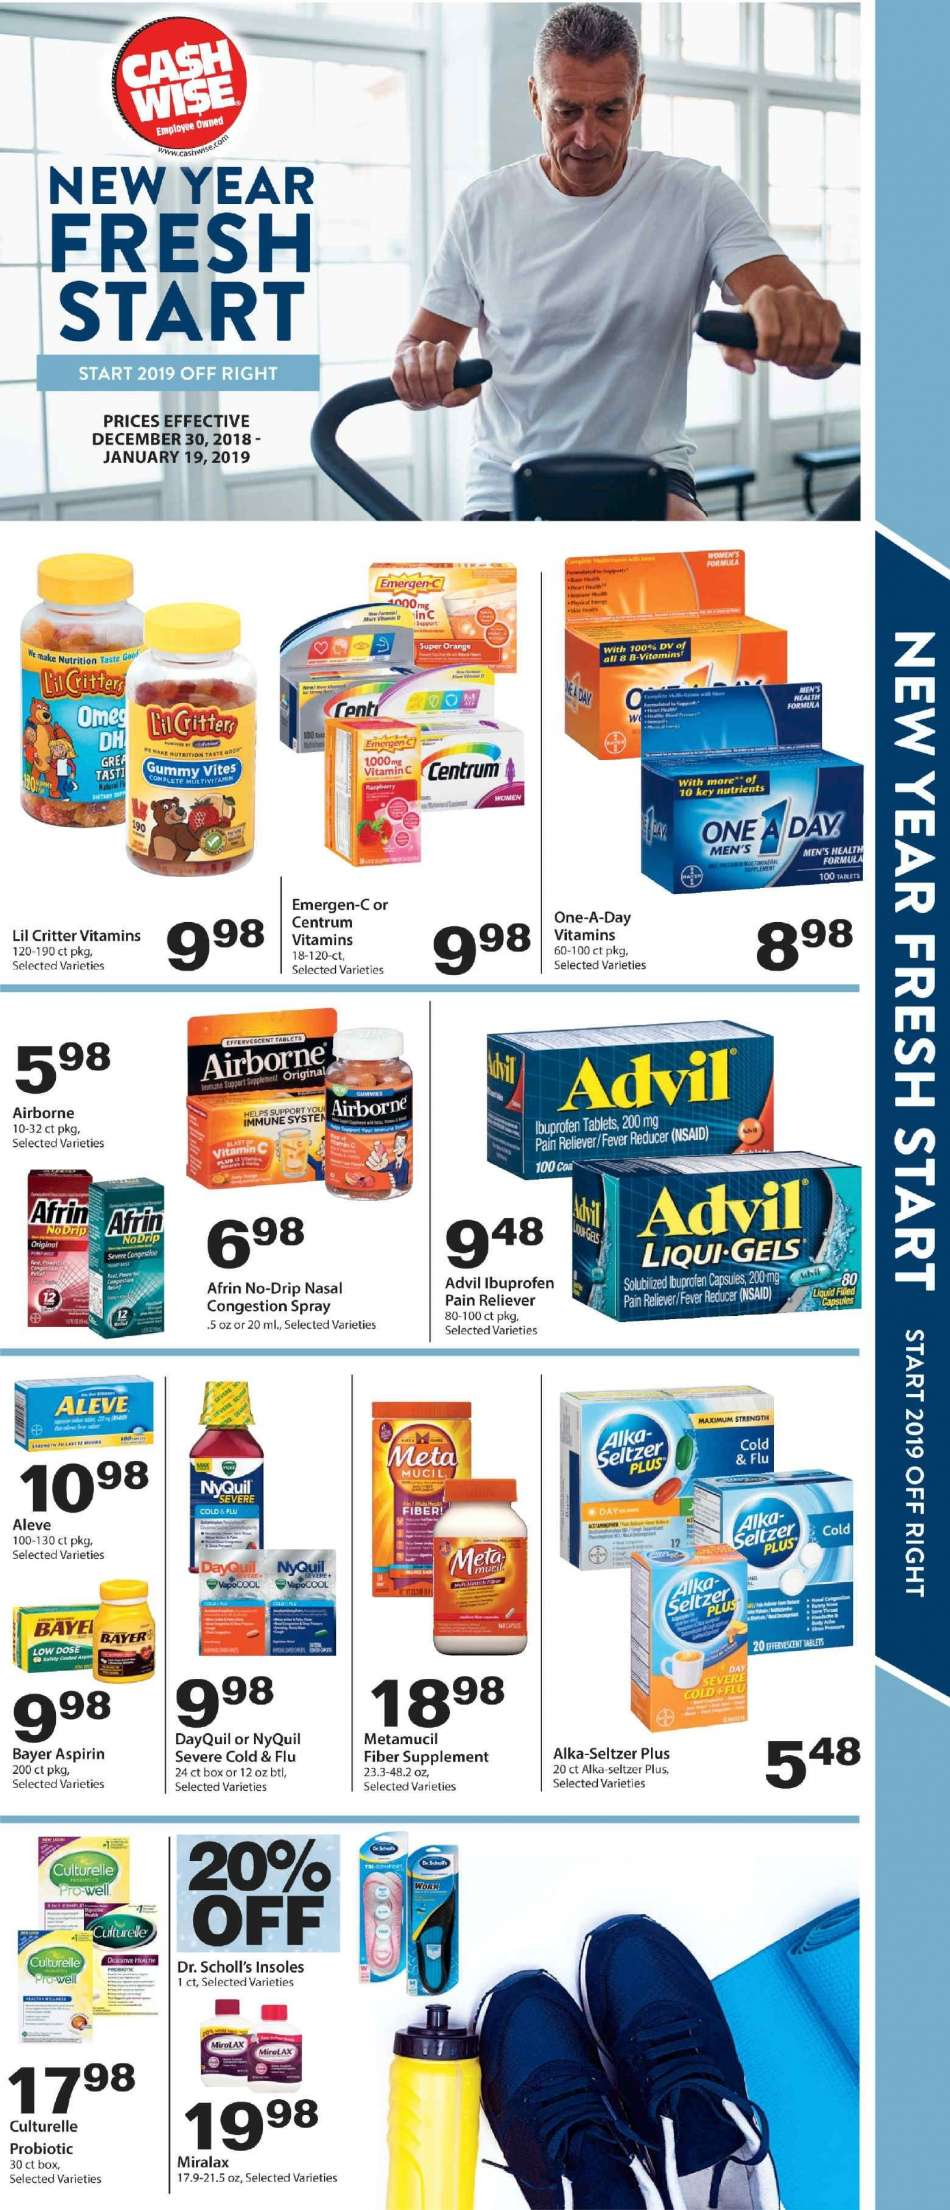 Cash Wise flyer 12 30 2018 - 01 19 2019 | Weekly-ads us